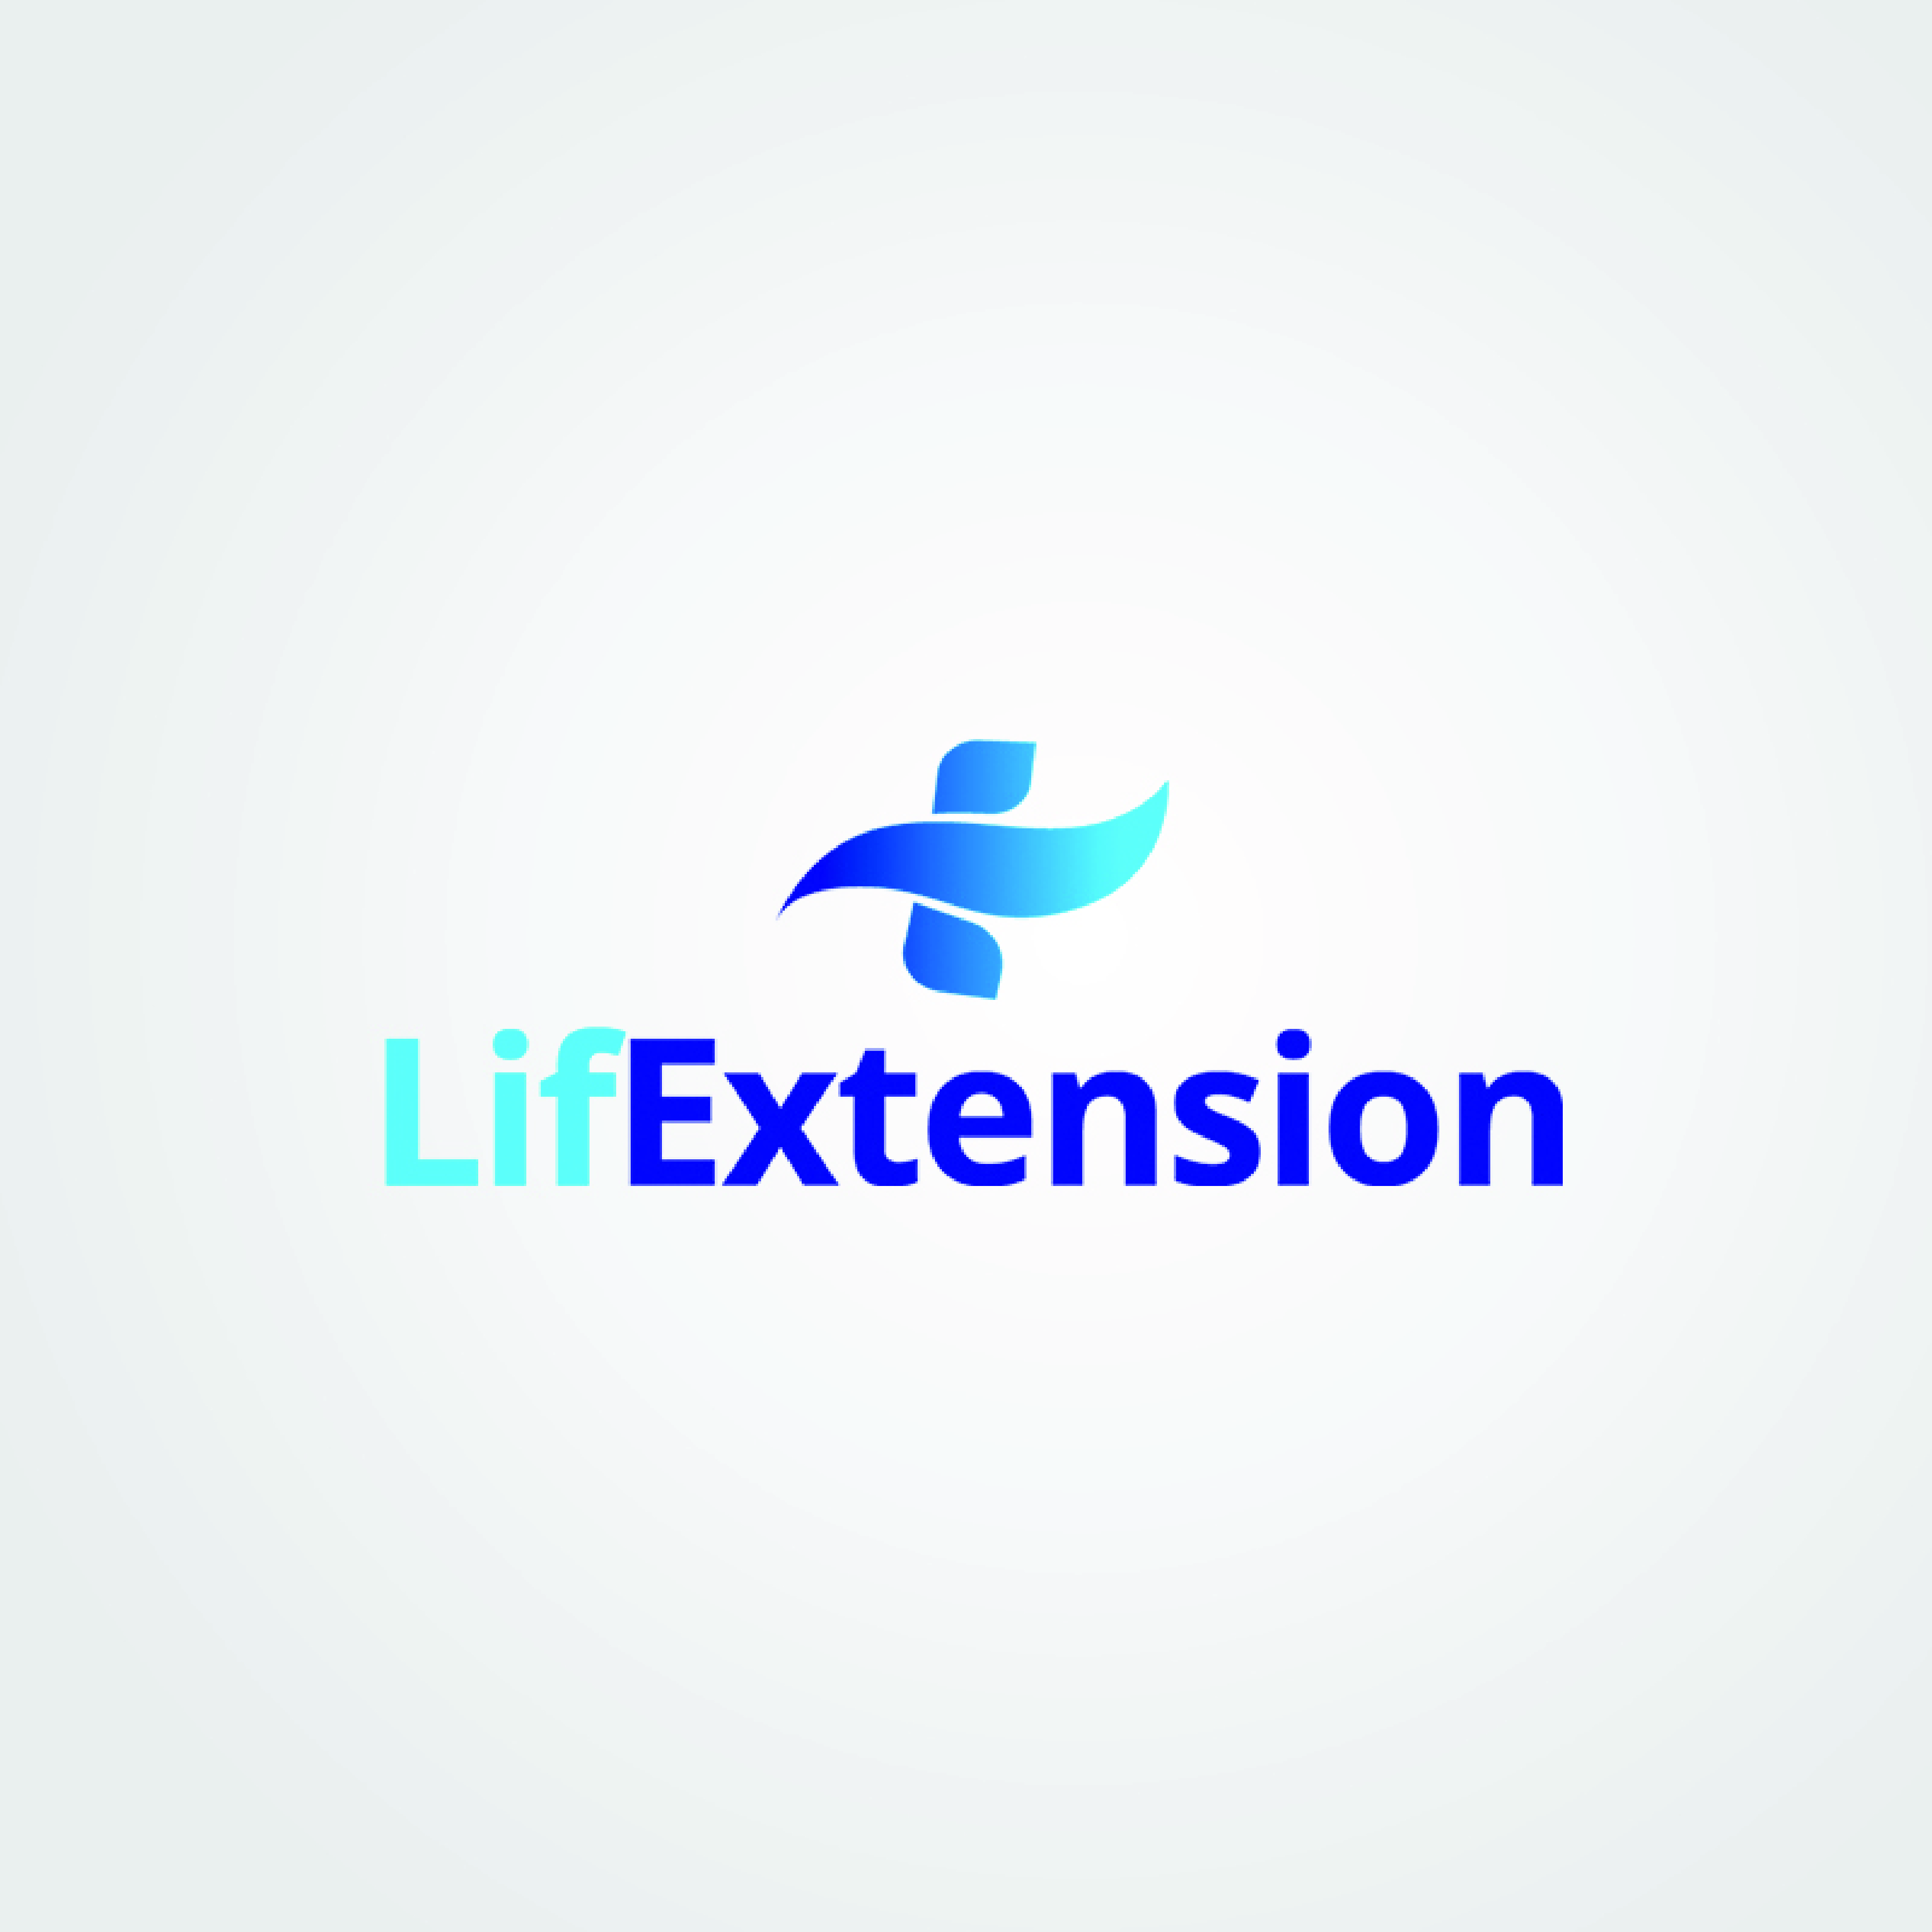 LifExtension